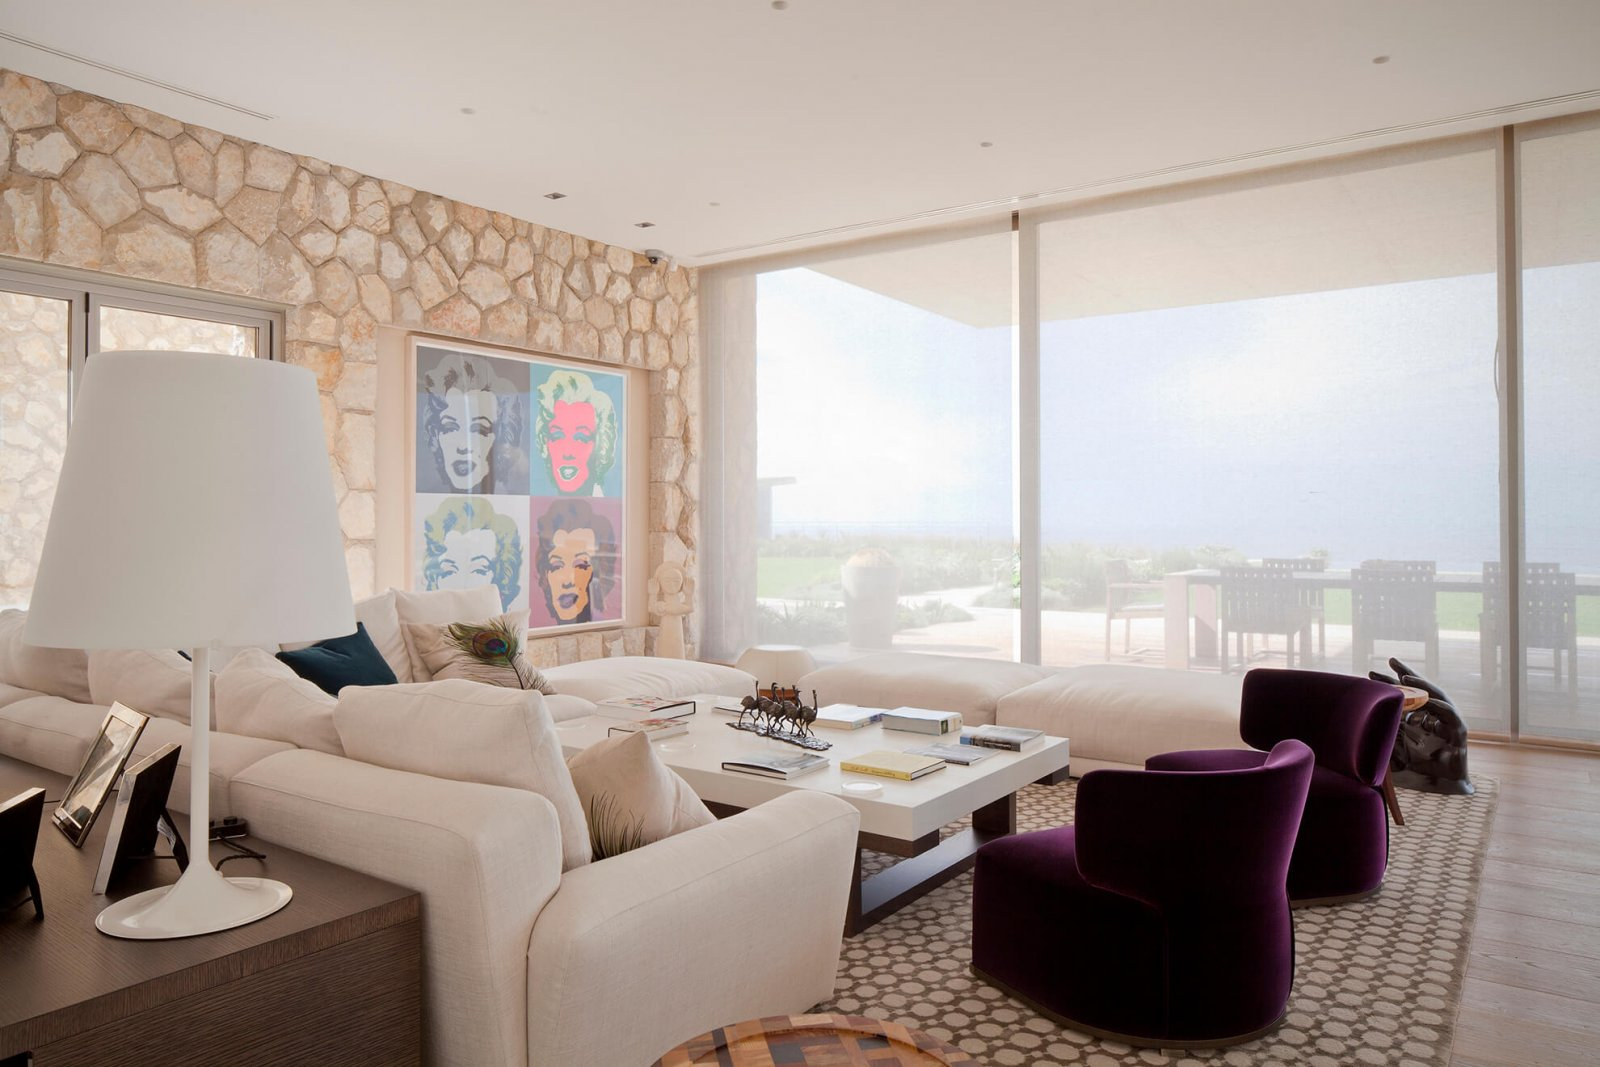 Detail view of the living room with stone wall and light sofas, in front of the sliding glass doors that lead to the garden